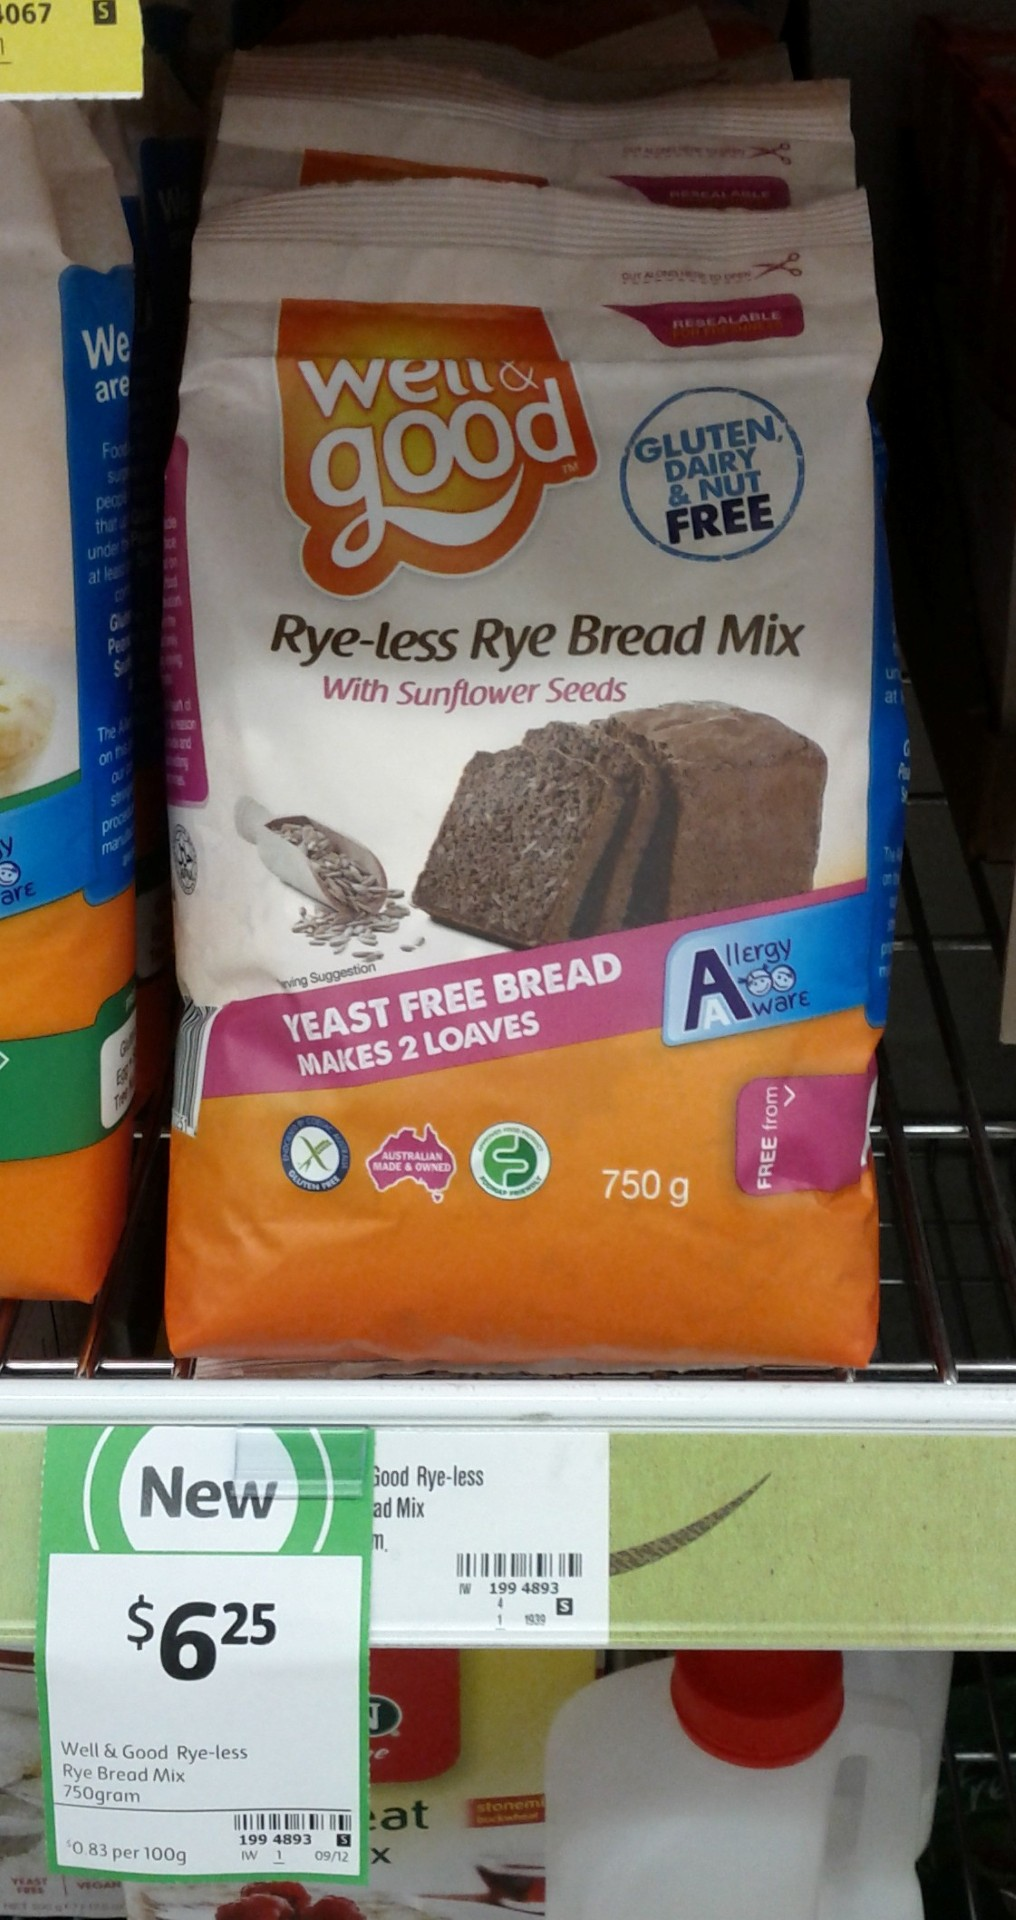 Well & Good 750g Rye-less Rye Bread Mix